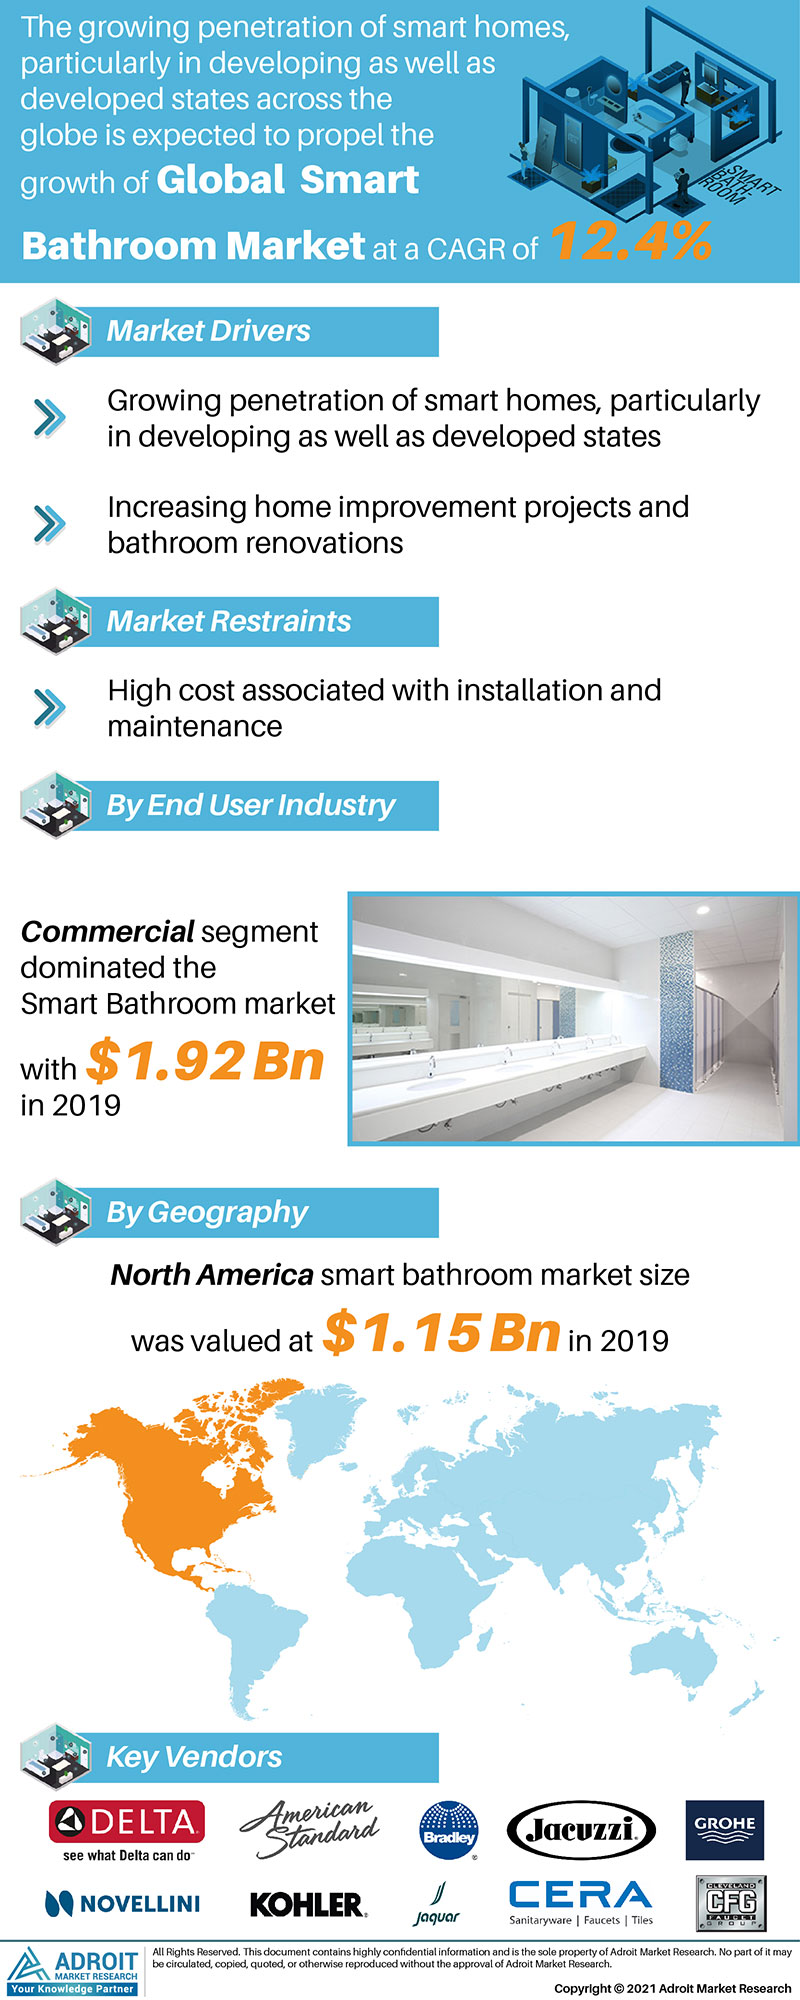 Smart Bathroom Market Trends and Forecasts Research Report